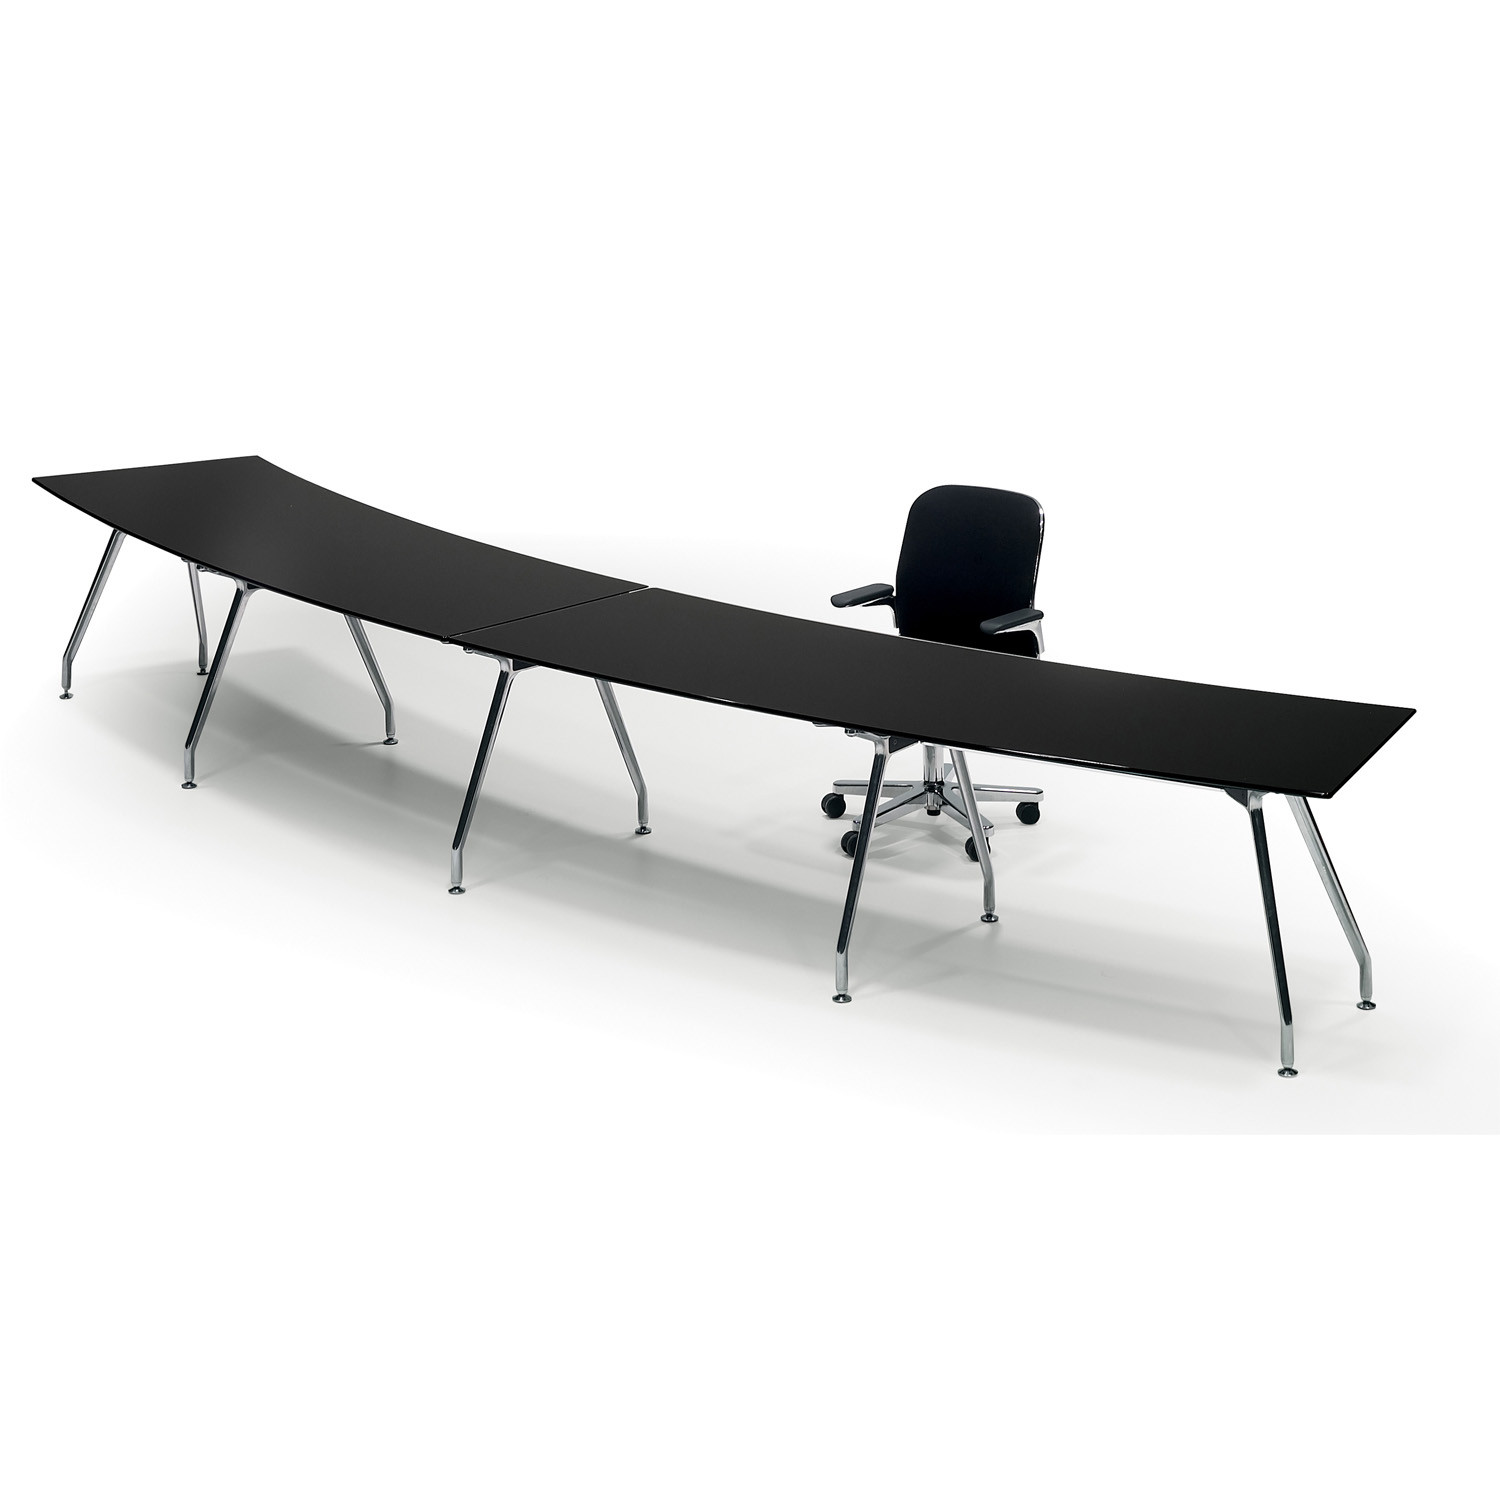 Unitable Modular Office Tables